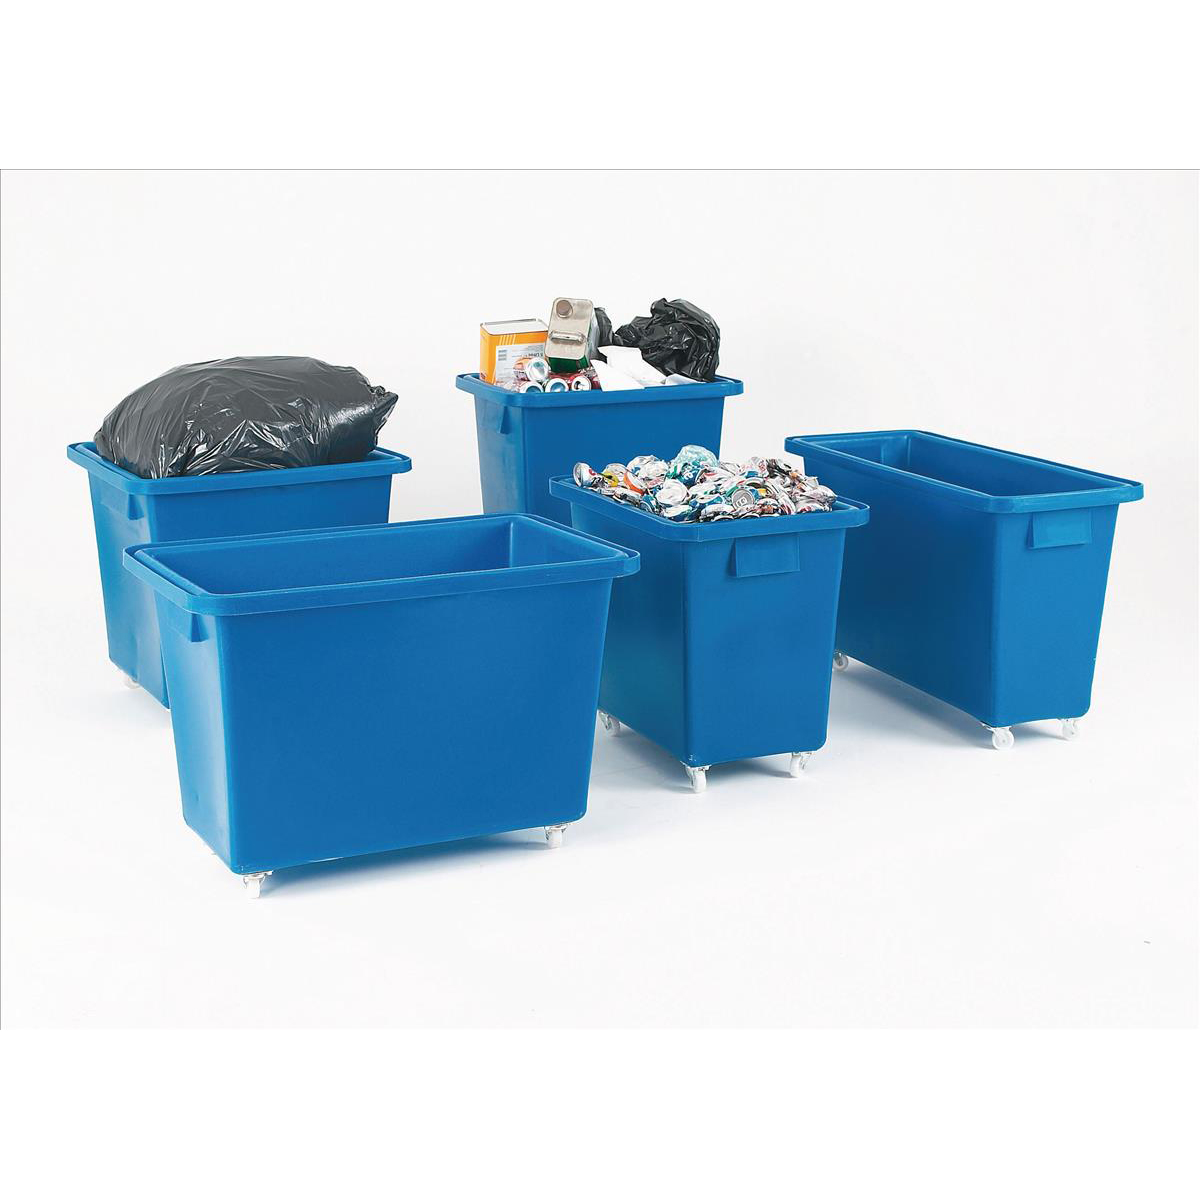 Recycling Bins Bottle Skip Four Castors Medium Density Polyethylene 930x340x550mm Royal Blue